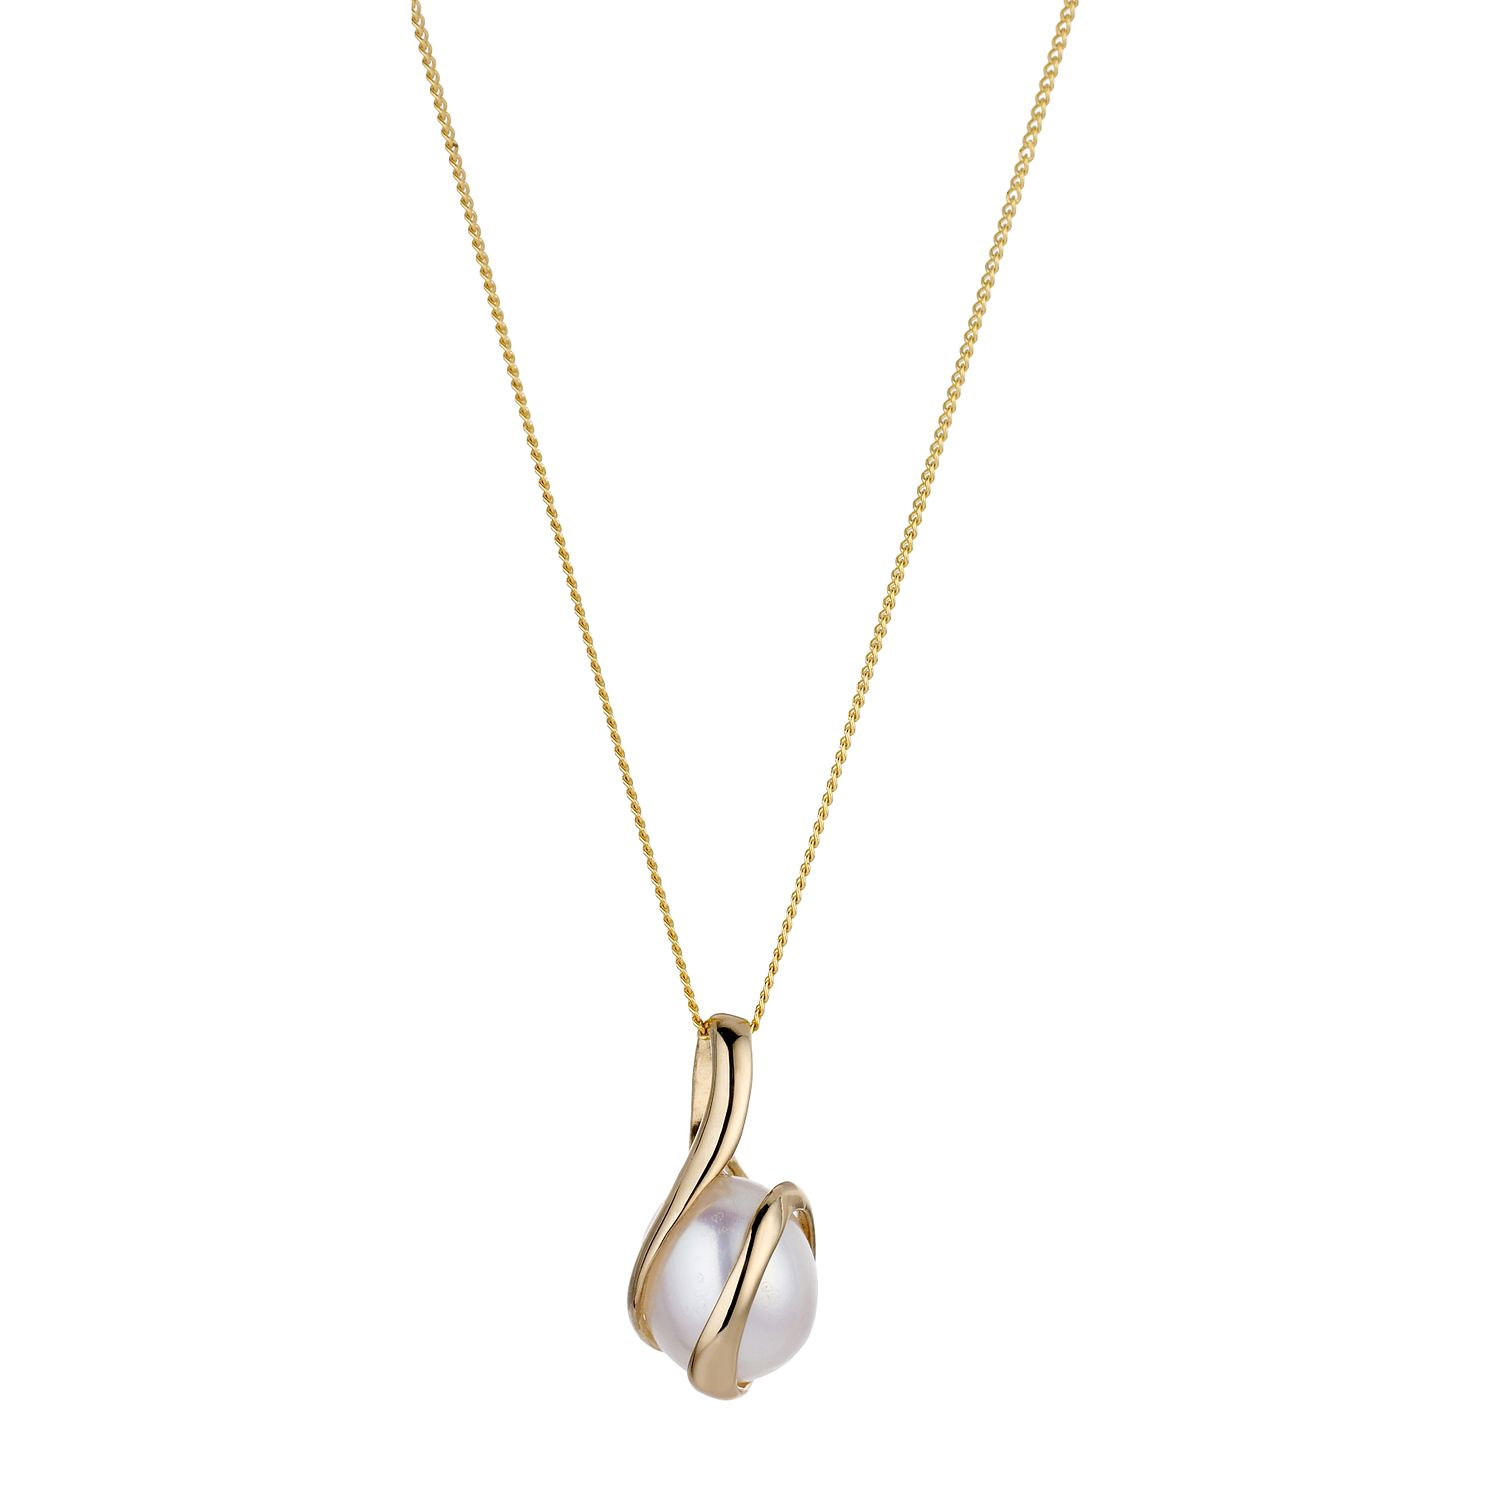 design pendant designs simple com plated detail buy new on women alibaba gold big product pearl